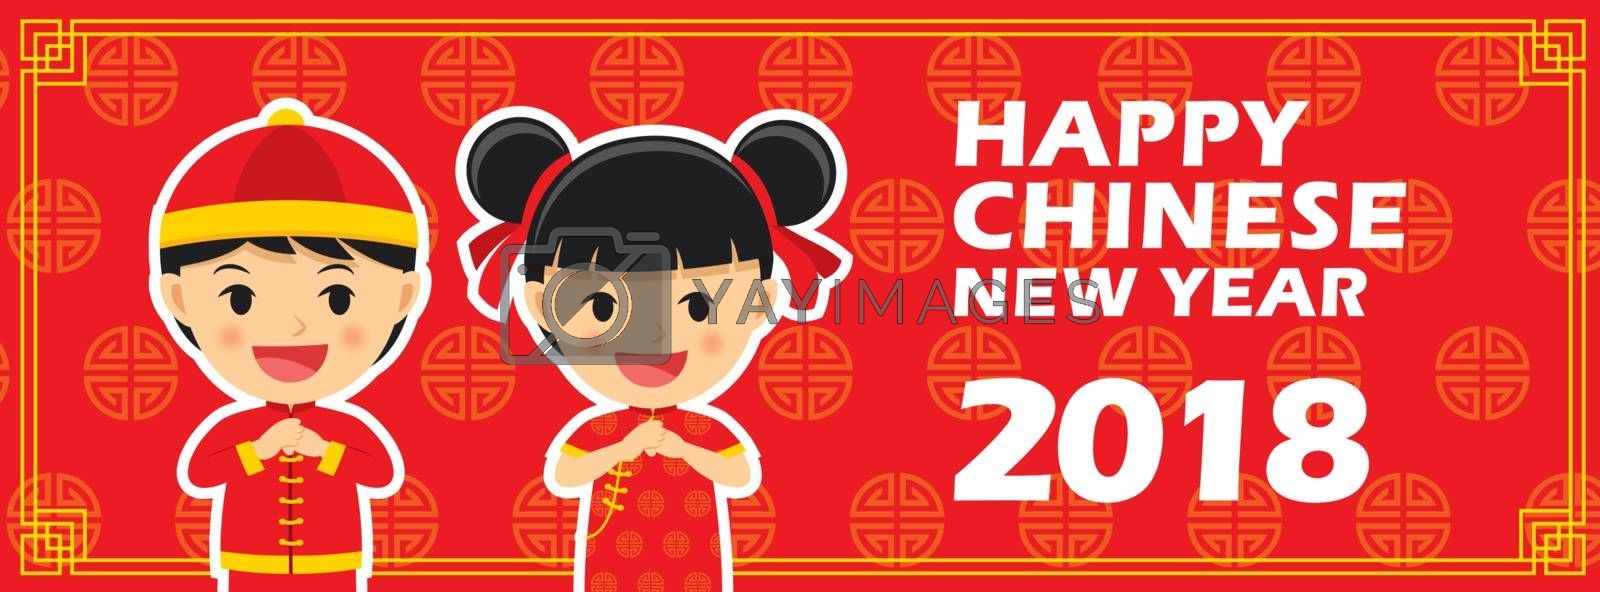 Happy chinese new year greetings card.